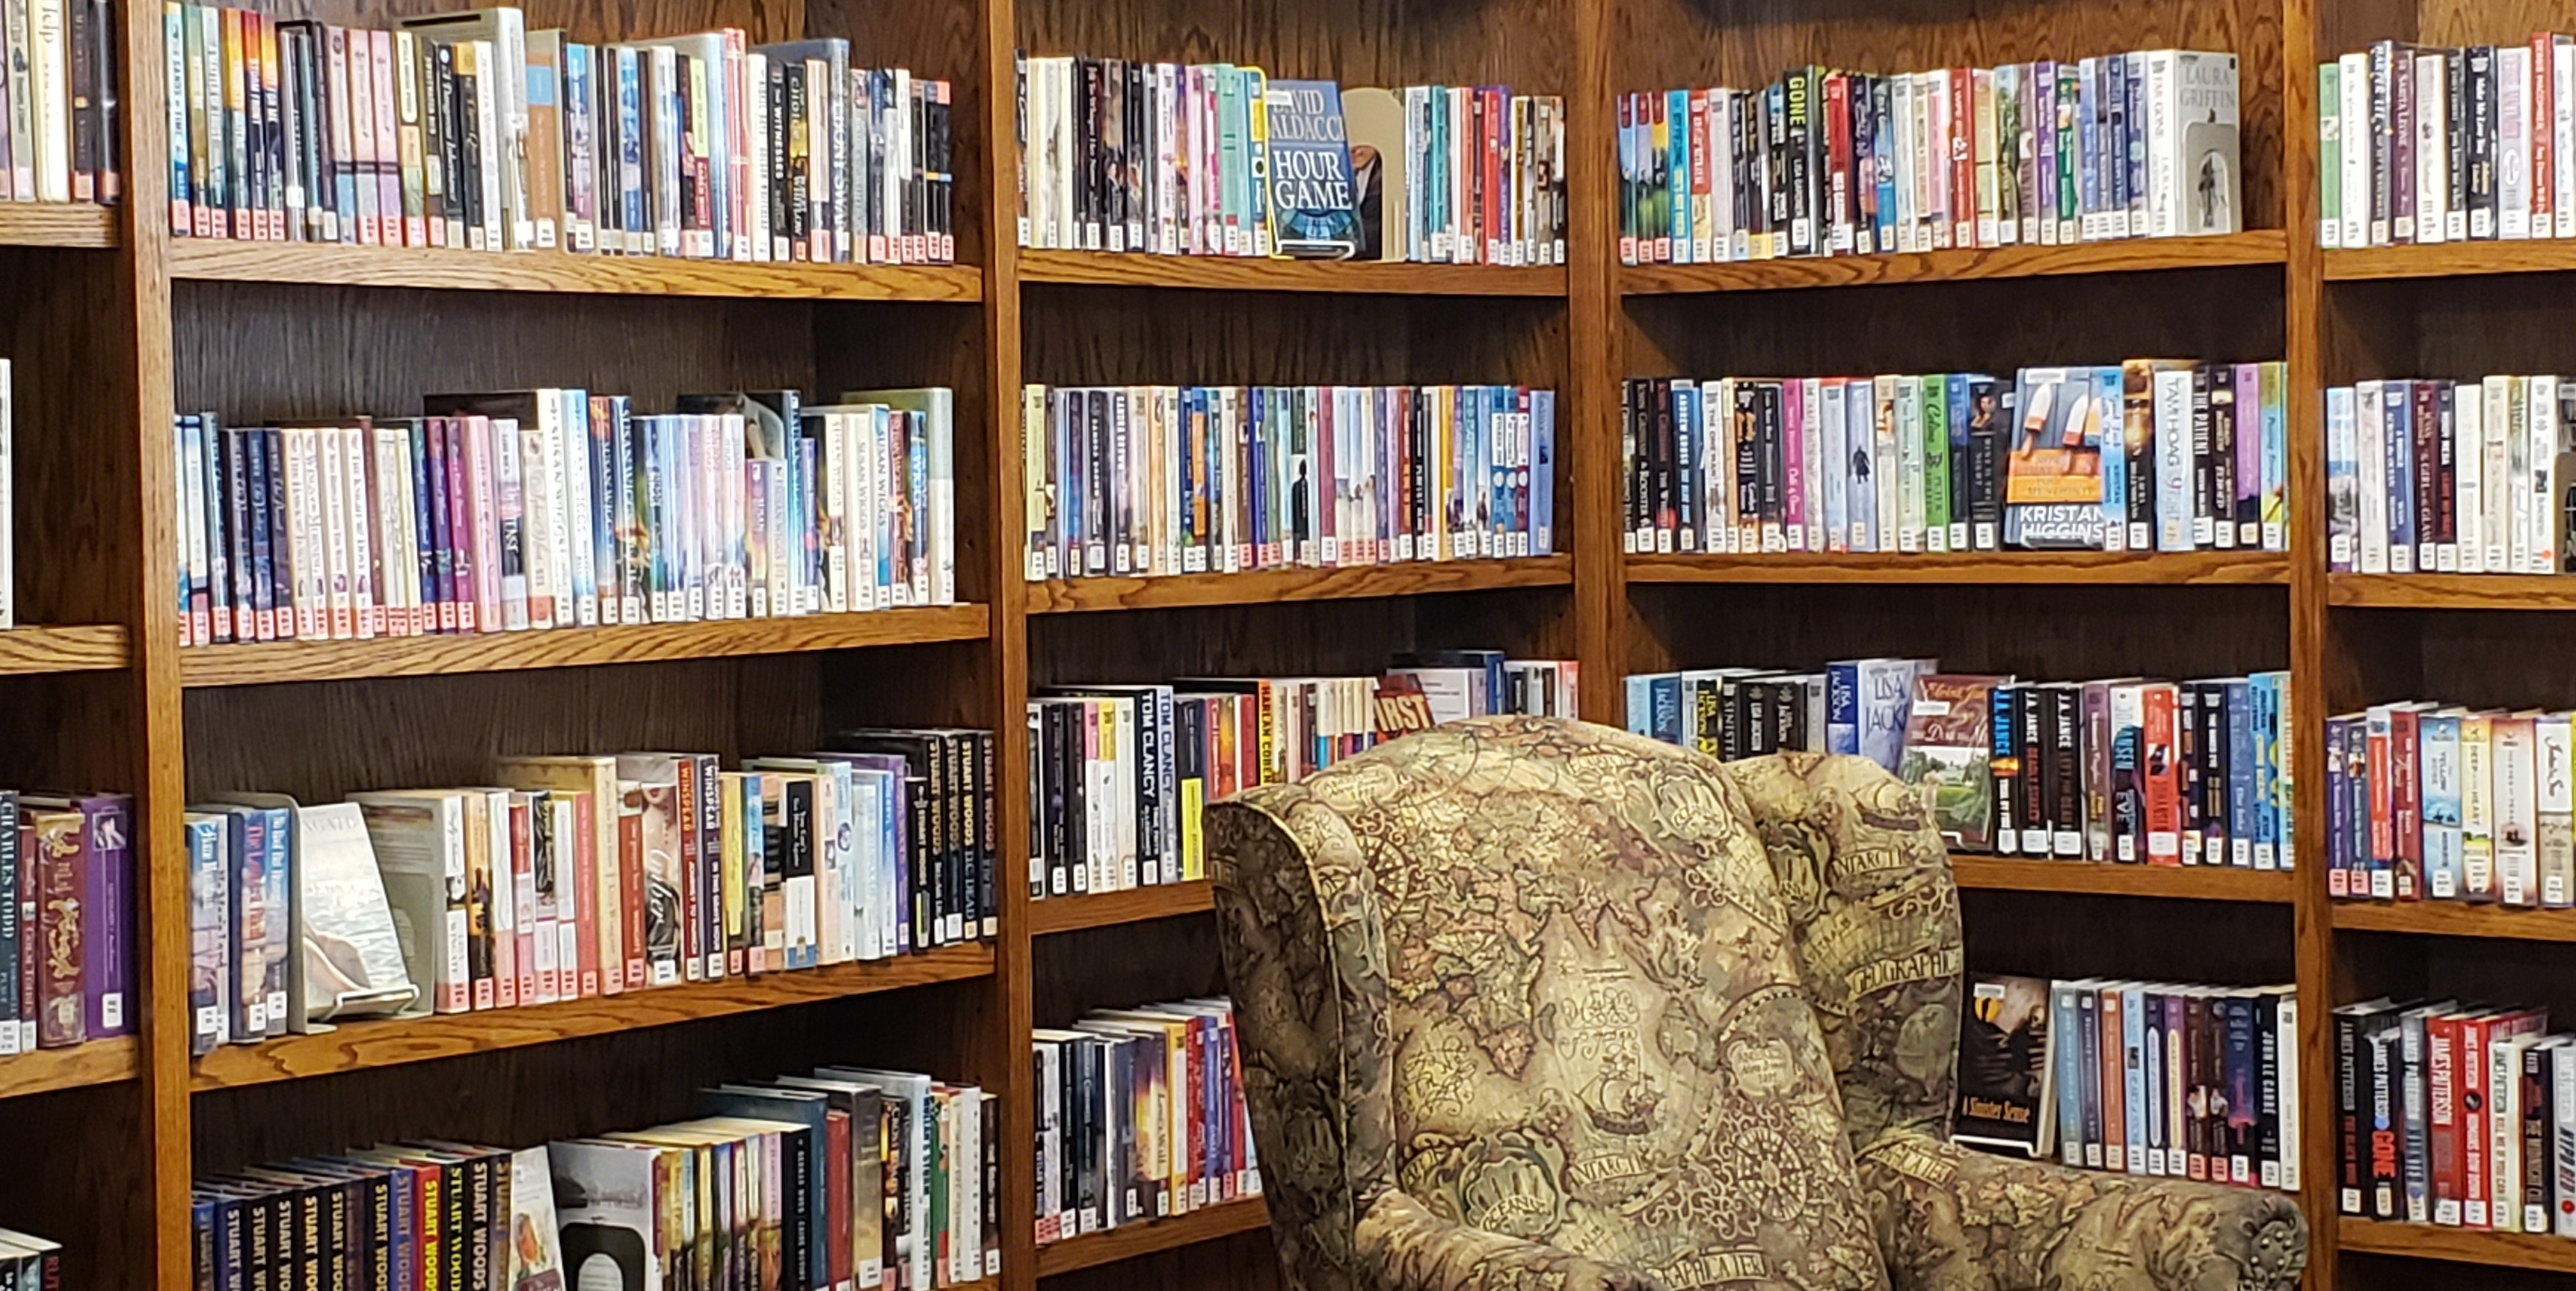 We have an extensive selection of large print titles to offer our patrons.  I we do not have what you are looking for, we can often interlibrary loan it!